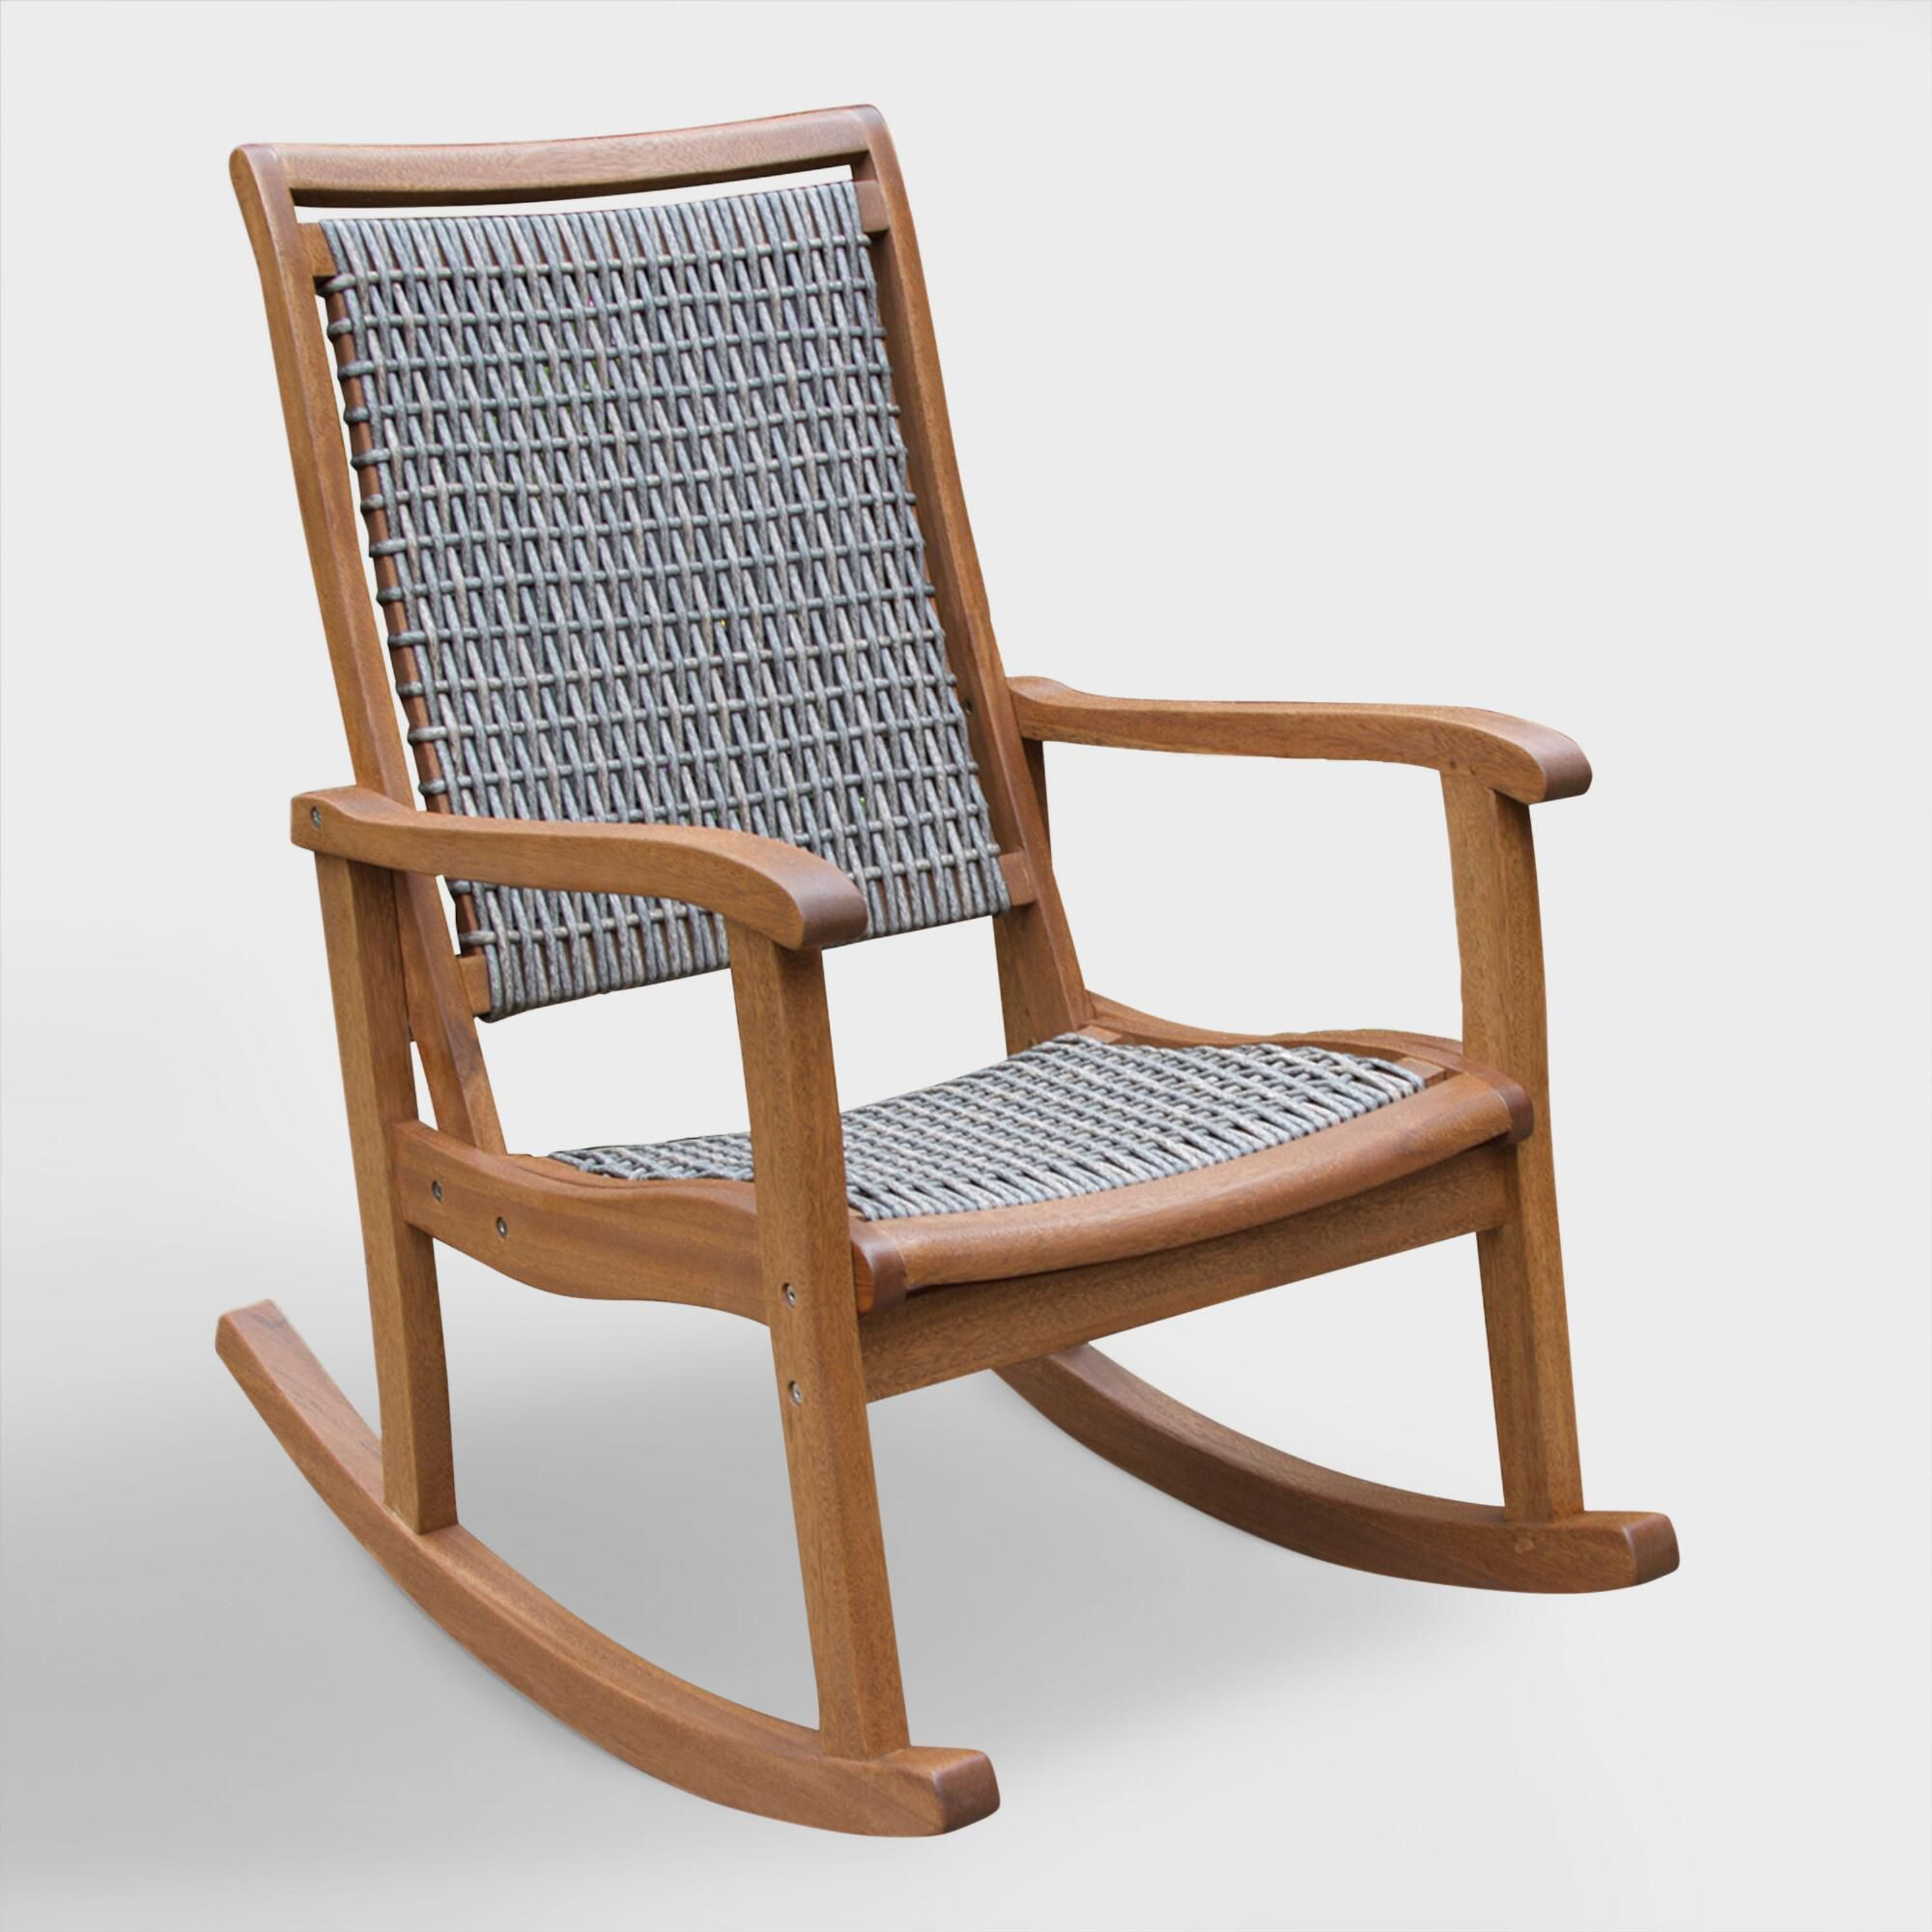 Wicker Wood All Weather Rocking Chair